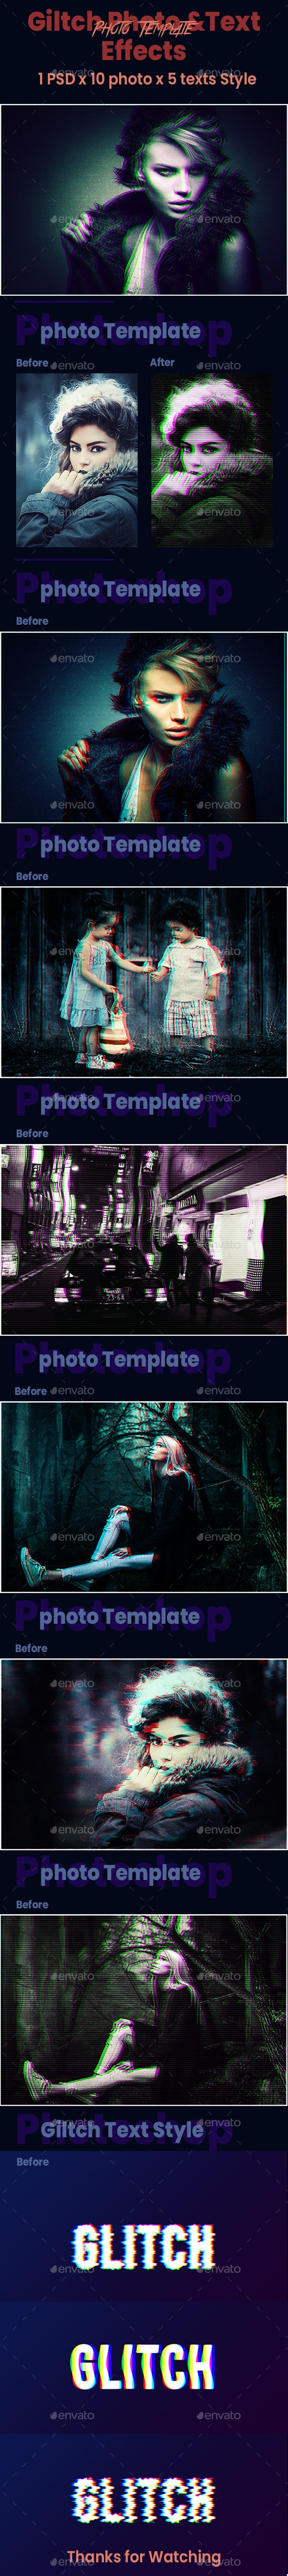 Glitch Photoshop Photo & Text effects - Photo Templates Graphics